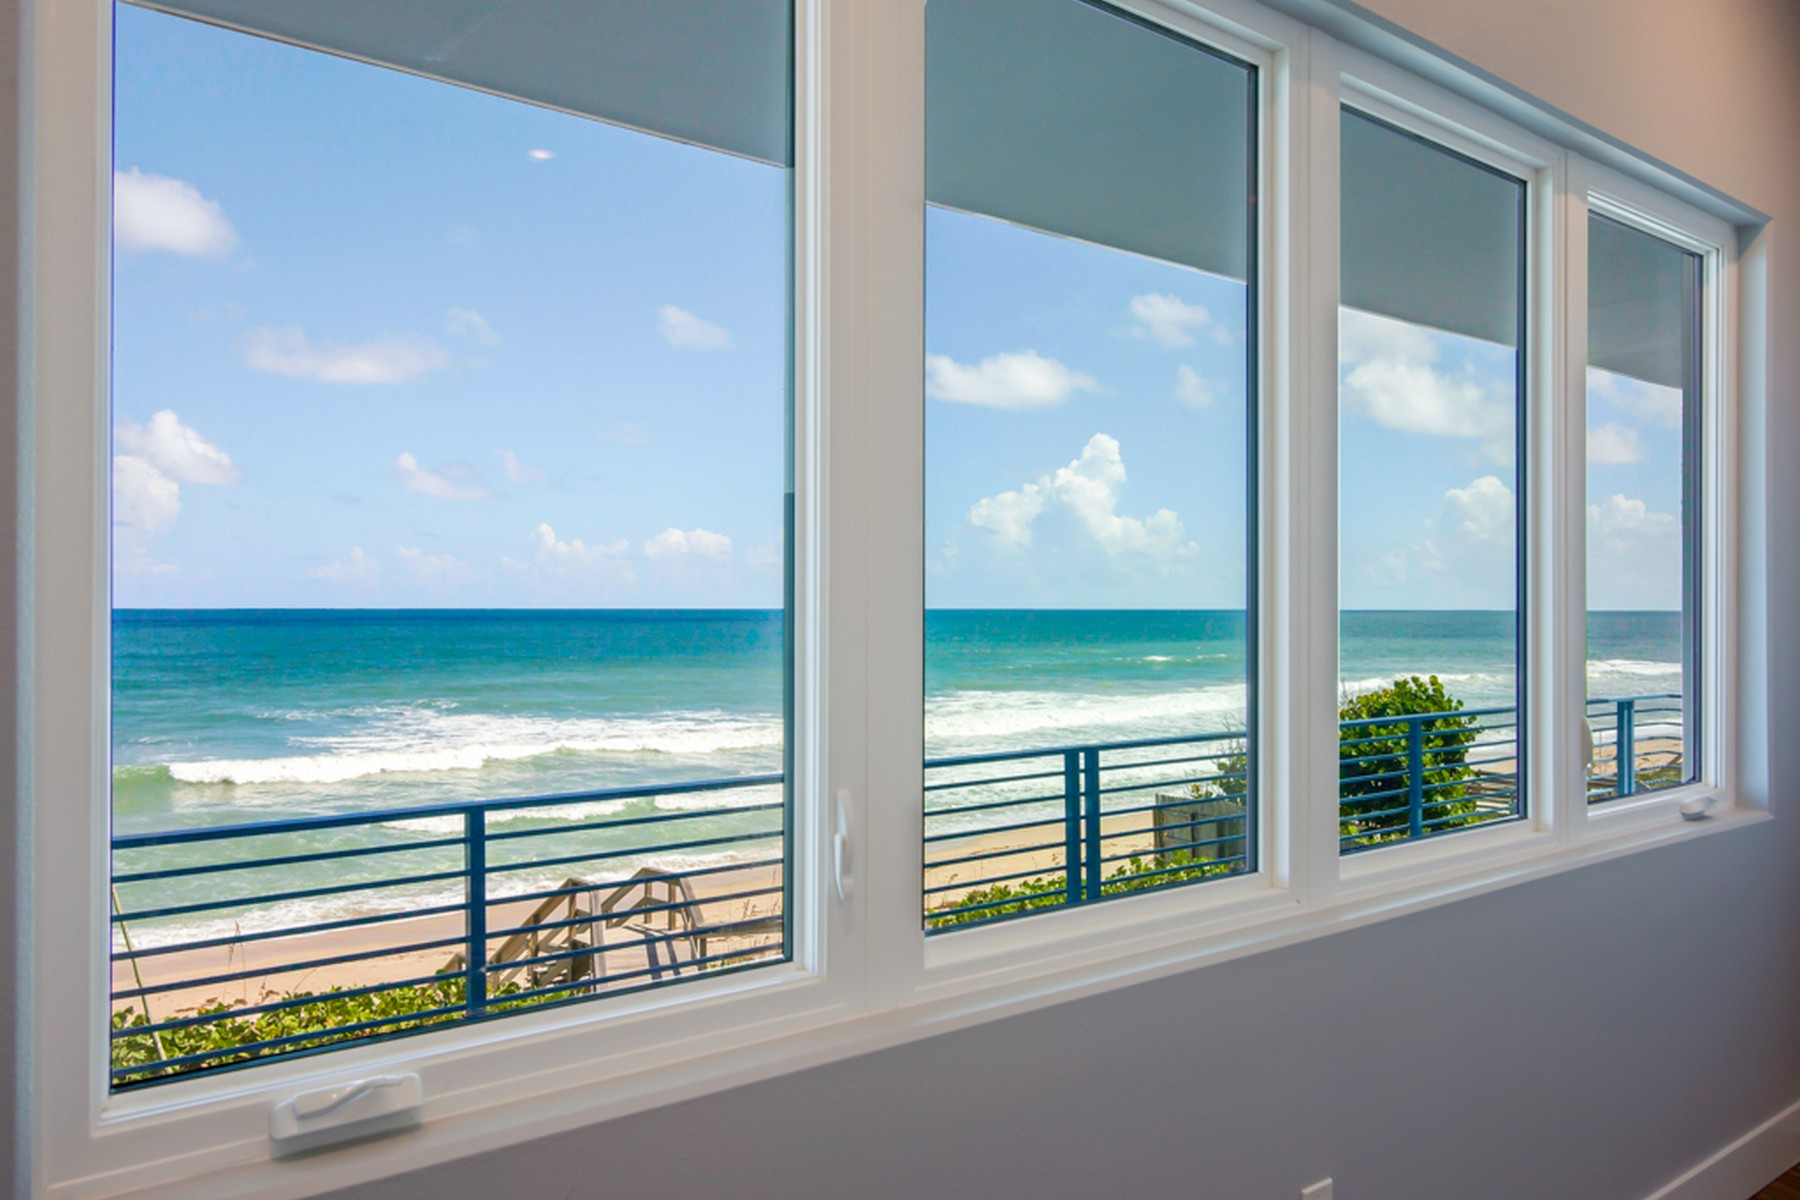 Additional photo for property listing at Contemporary Oceanfront Home 5285 S. Highway A1A Melbourne Beach, Florida 32951 Amerika Birleşik Devletleri